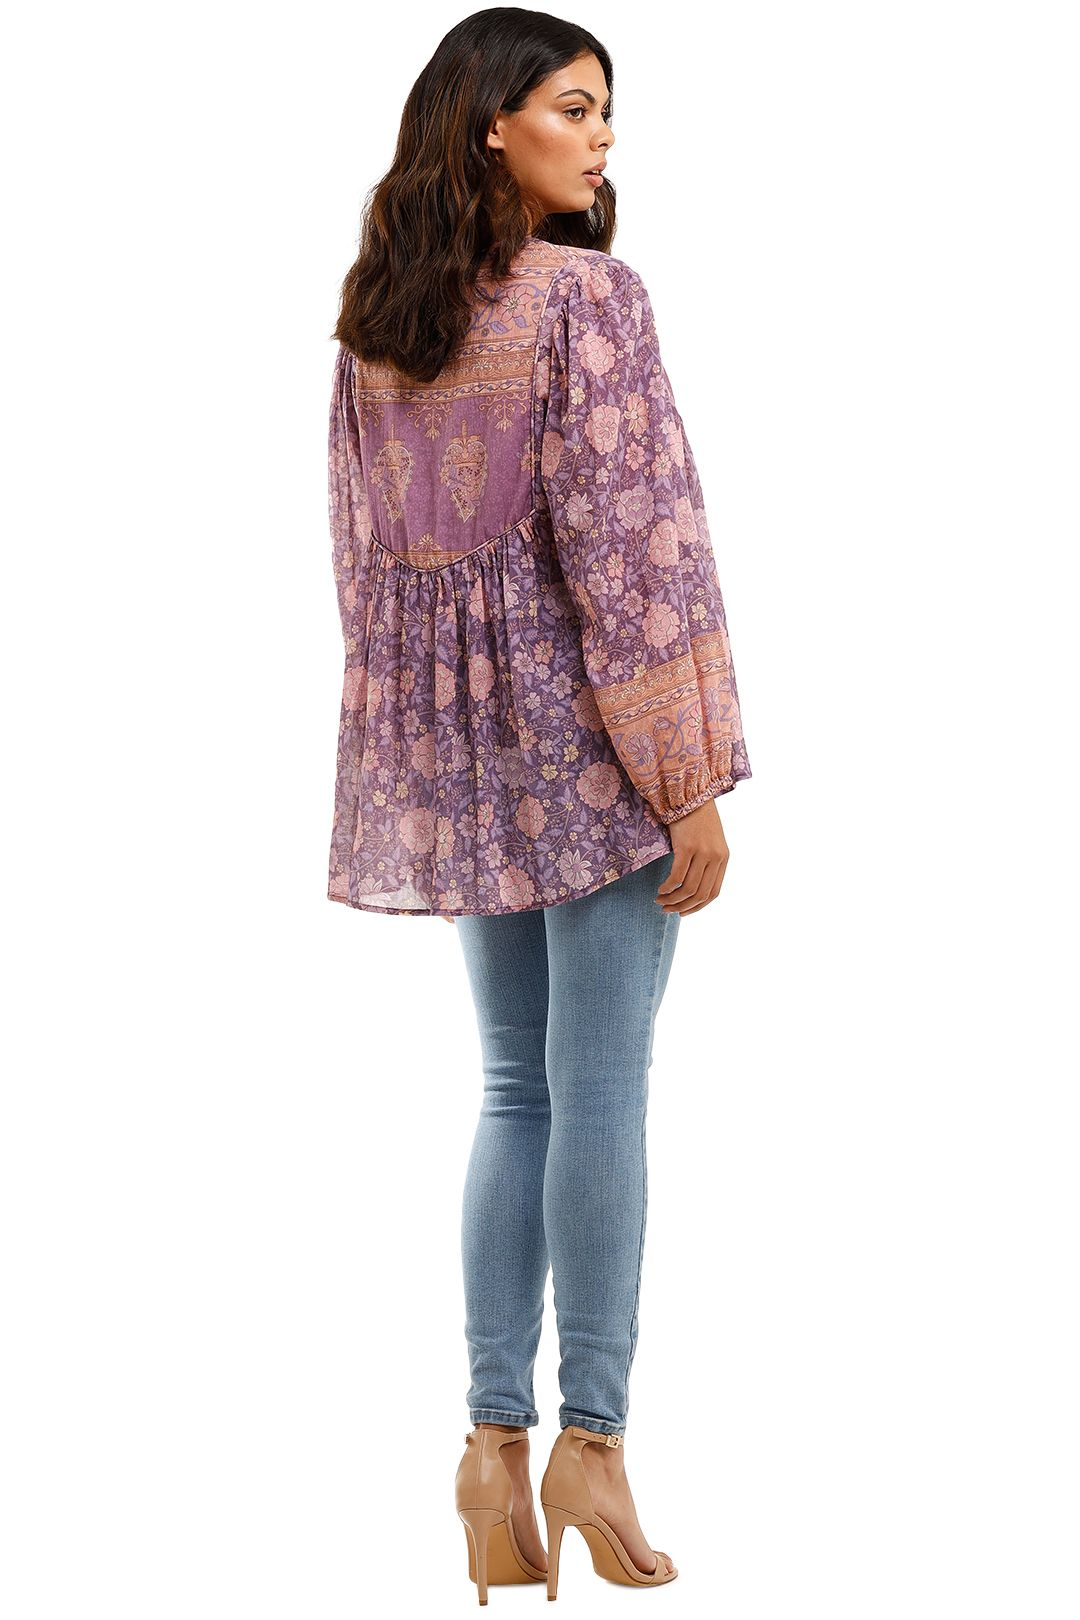 Spell Love Story Long Sleeve Blouse Royal Lilac Floral